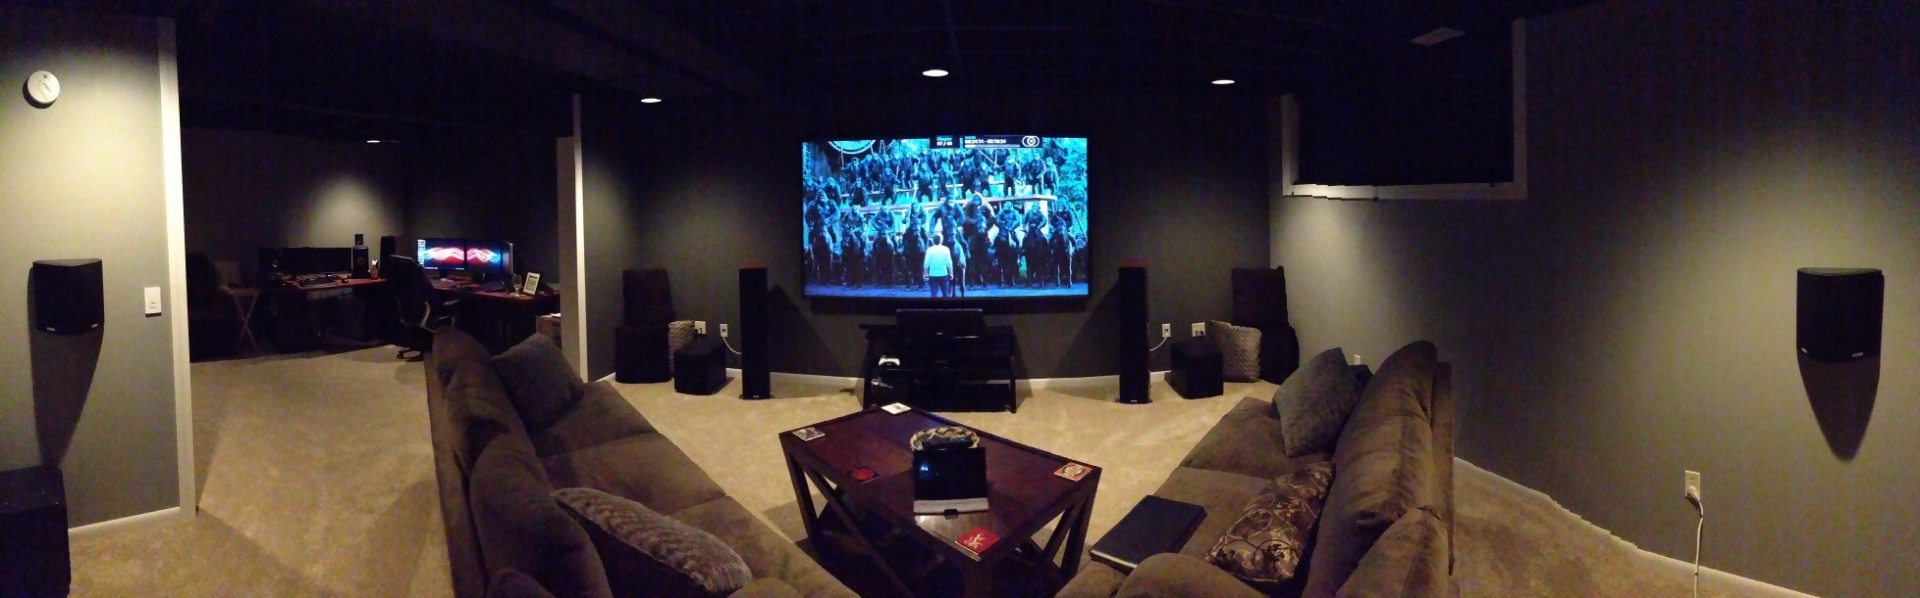 Qrf Uproar S Home Theater Gallery Ht Before And After 20 Photos